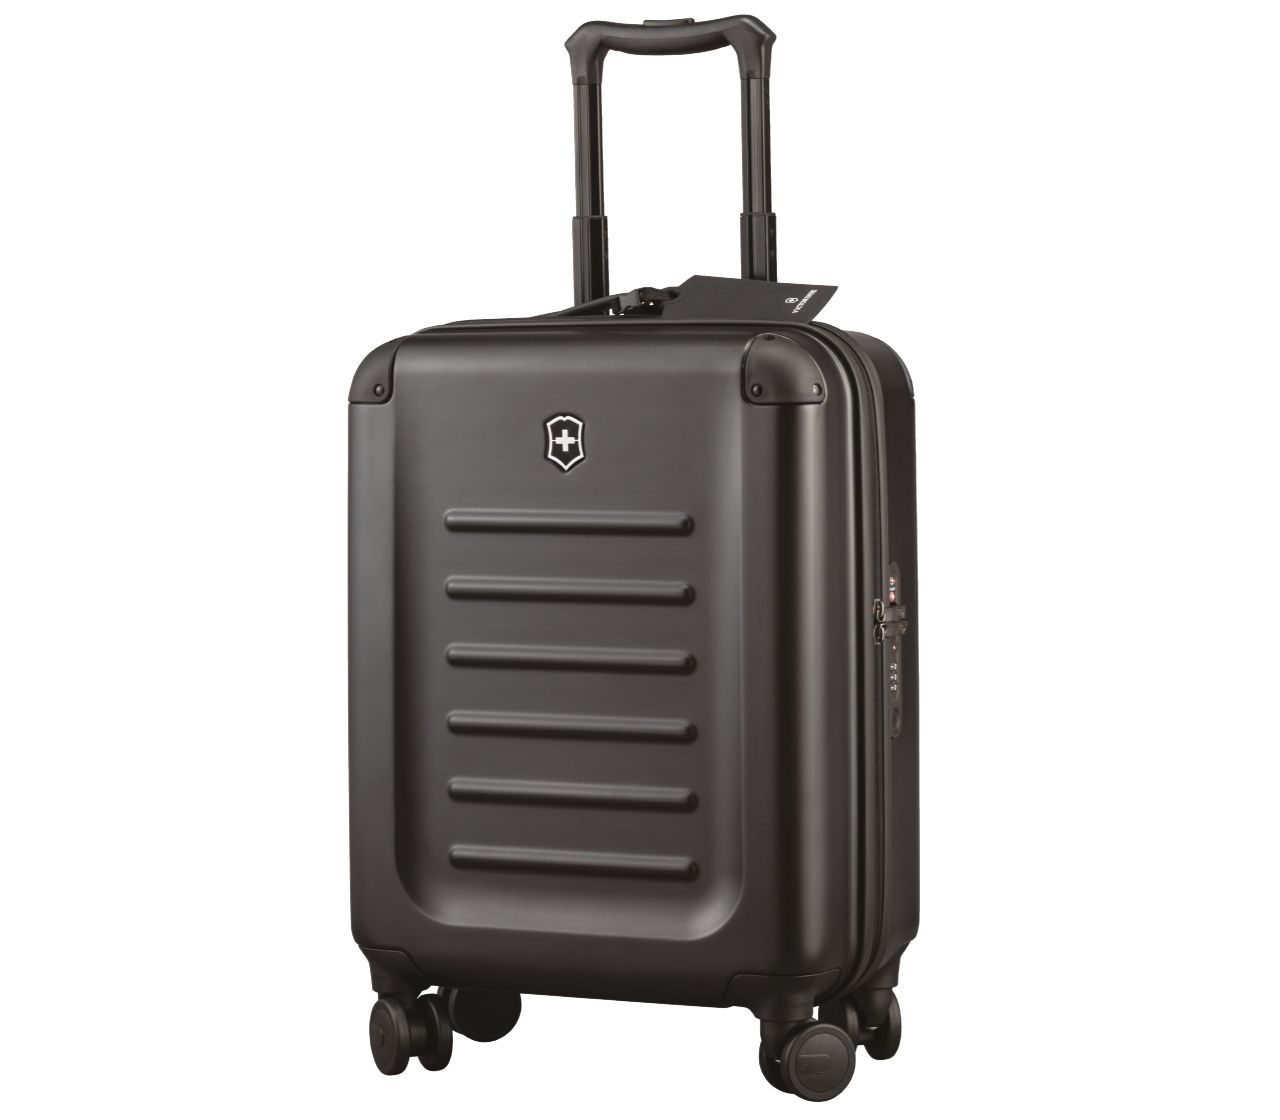 Spectra 2.0 Global Carry-On-31318201